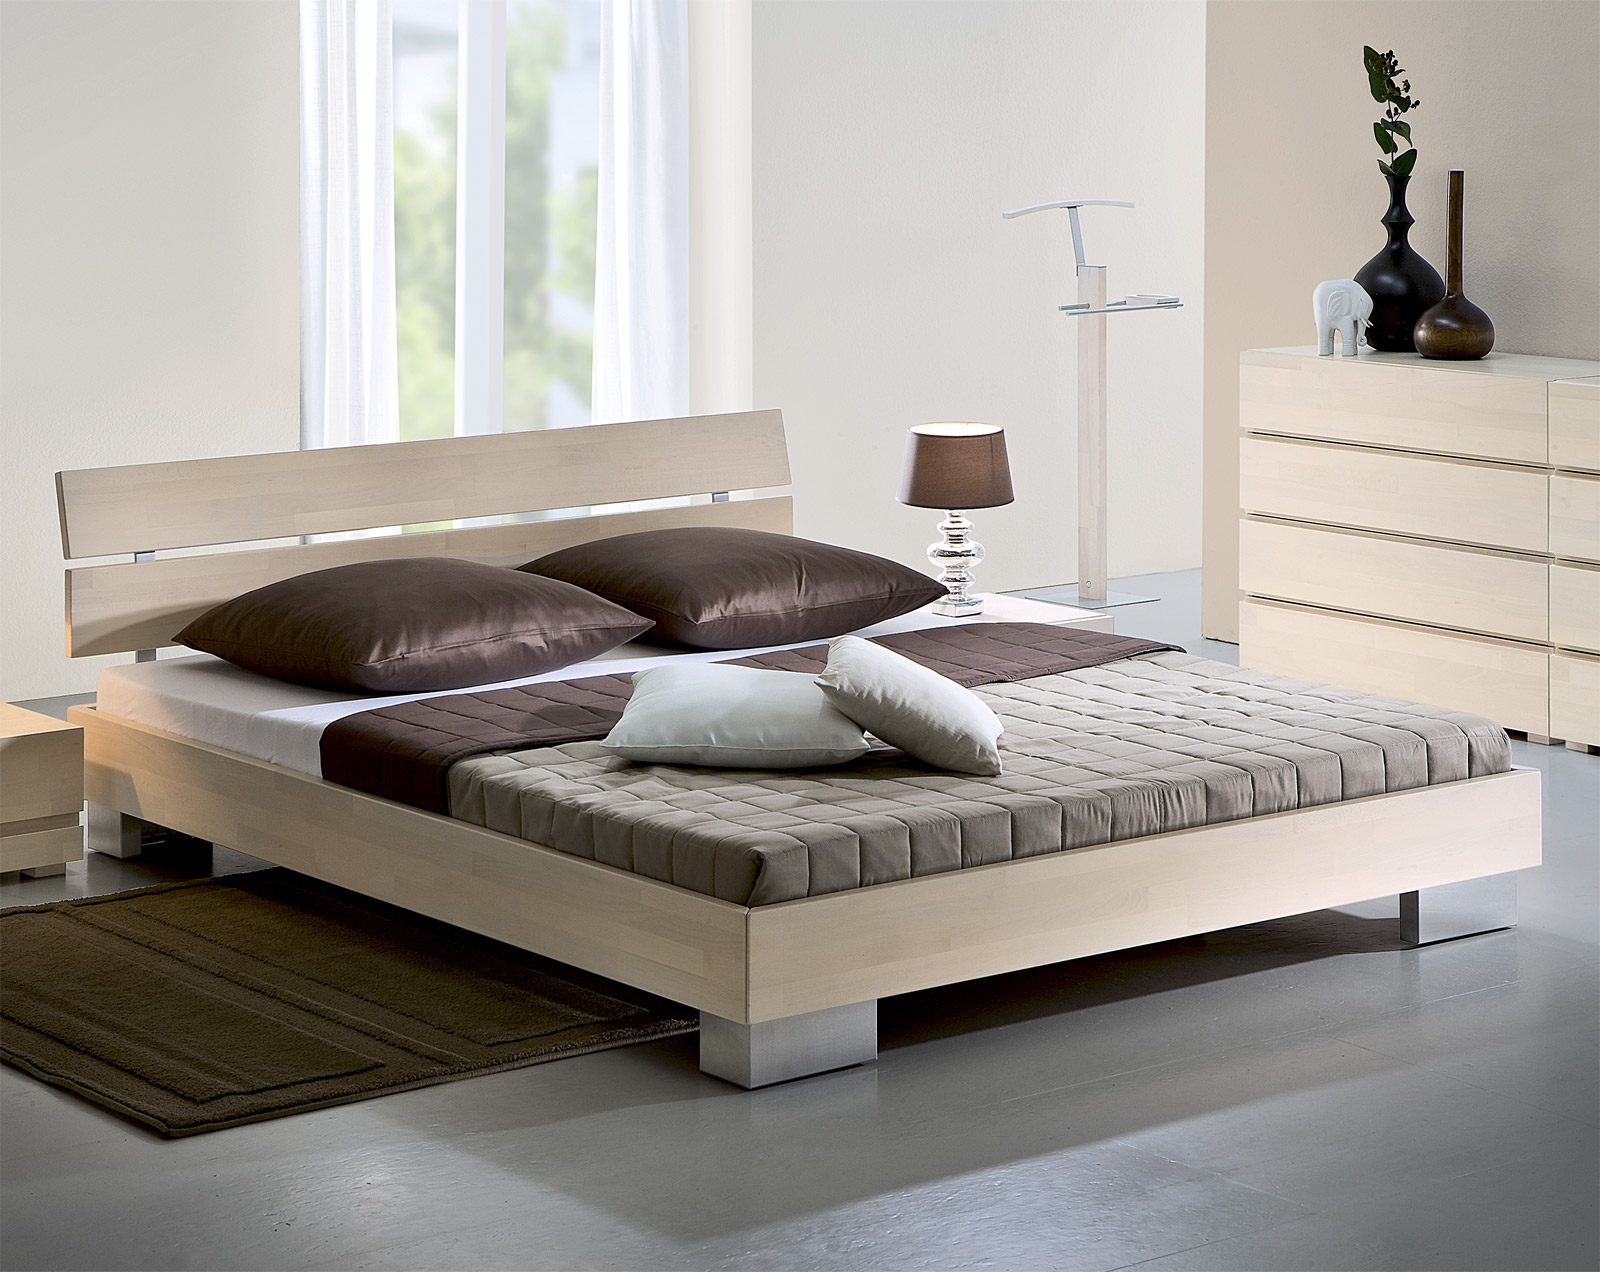 bett in z b 90x200 cm gr e aus buchenholz sogno. Black Bedroom Furniture Sets. Home Design Ideas